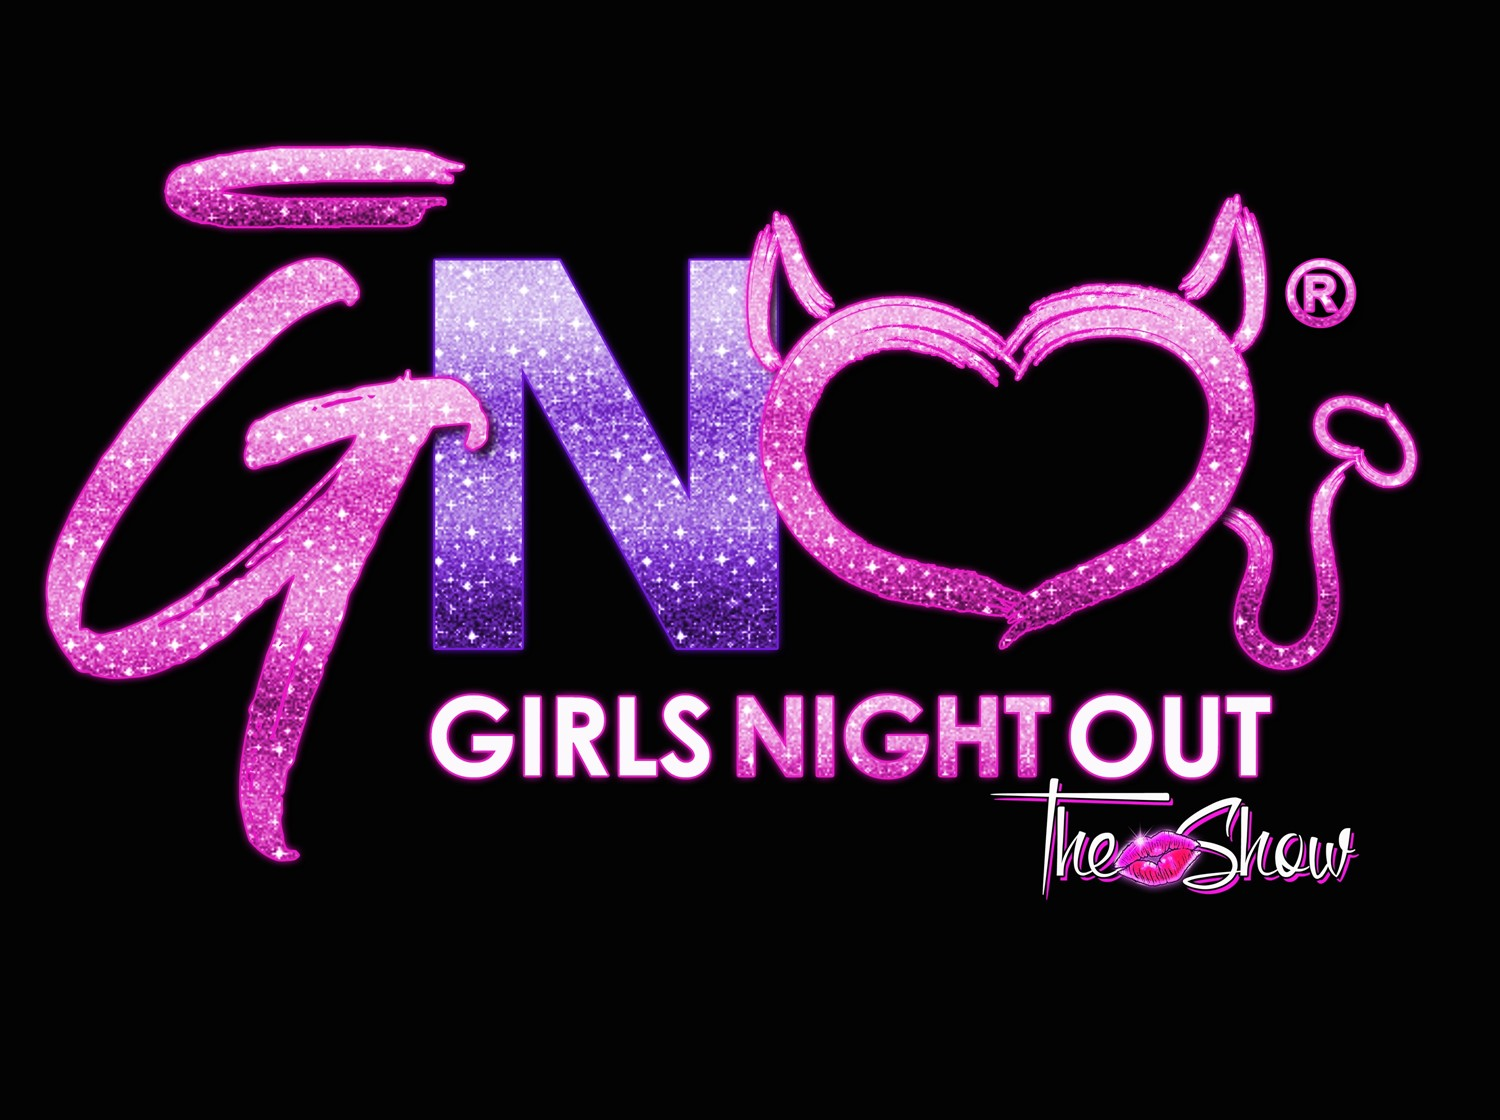 ZimMarss Showbar (21+) Terre Haute, IN on Apr 24, 20:00@ZimMarss Showbar - Buy tickets and Get information on Girls Night Out the Show tickets.girlsnightouttheshow.com